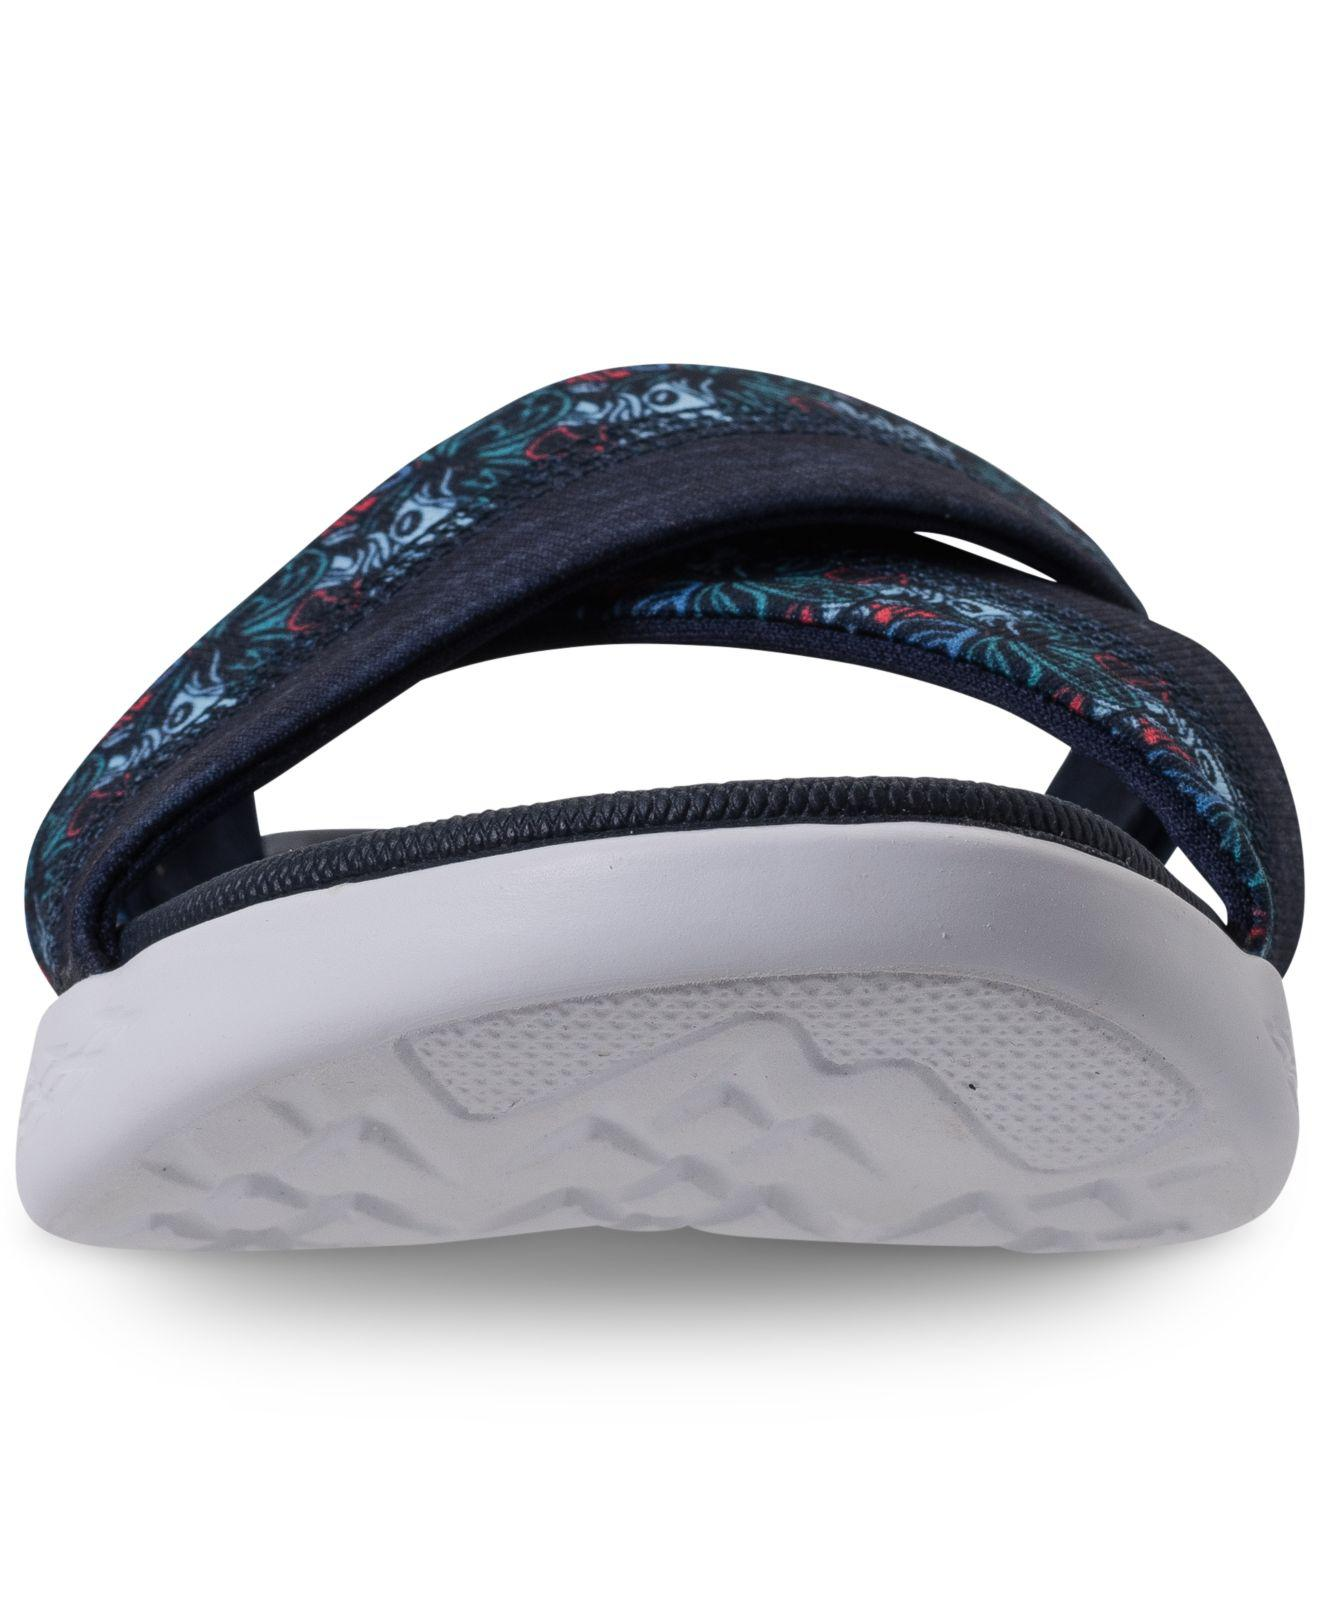 6202fffc783d Lyst - Skechers On The Go 600 - Monarch Athletic Sandals From Finish ...